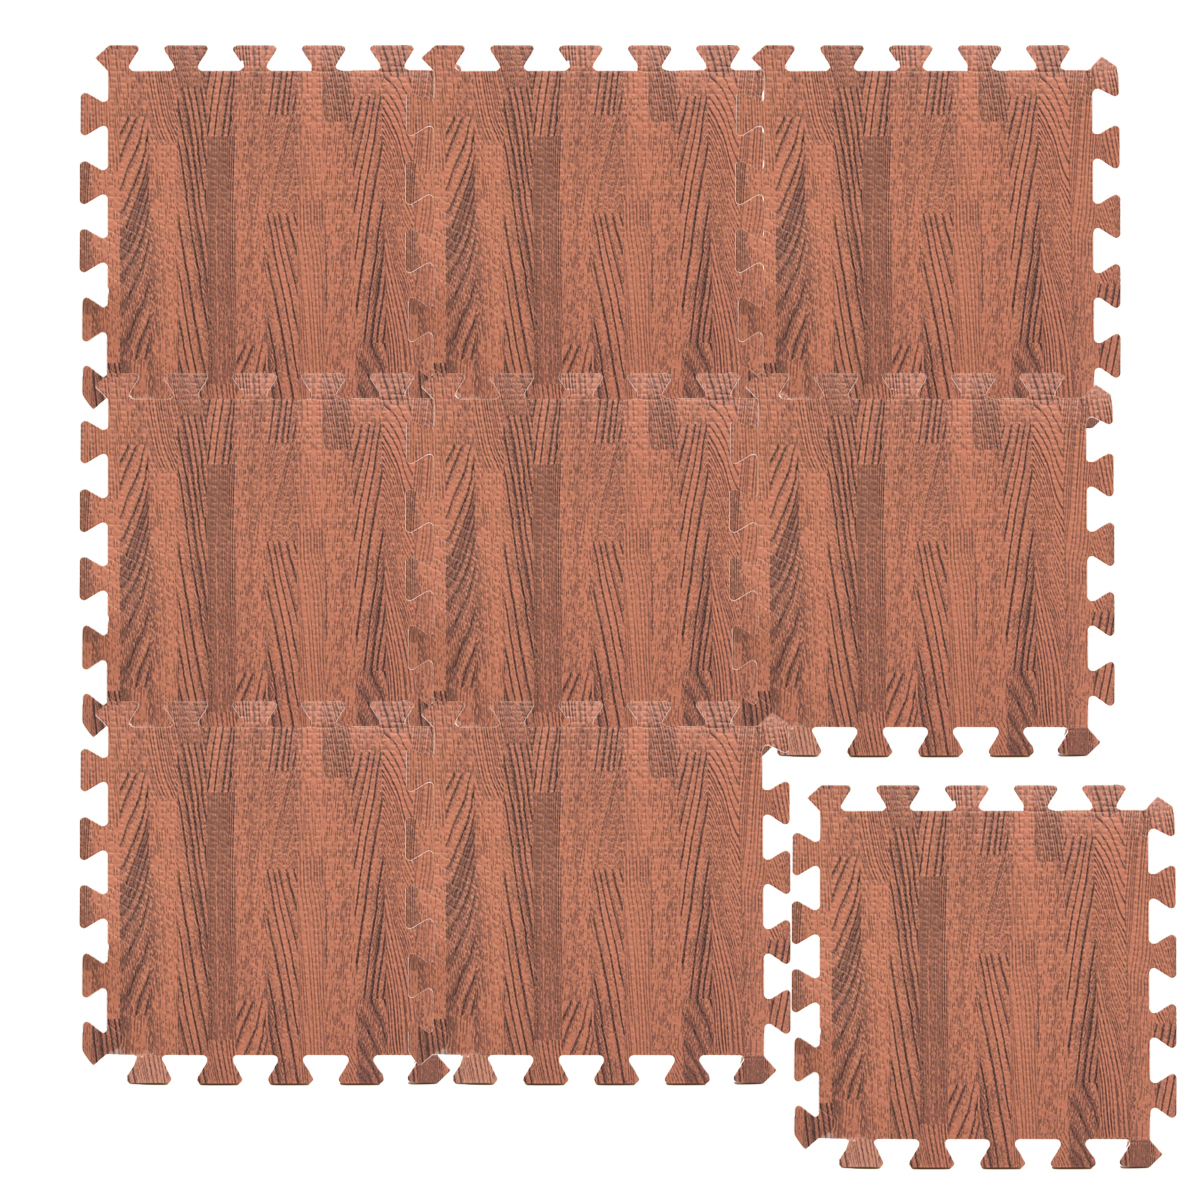 9Pcs 30x30 Square EVA Foam Wood Grain Interlocking Tiles Kids Exercise Play Floor Mats